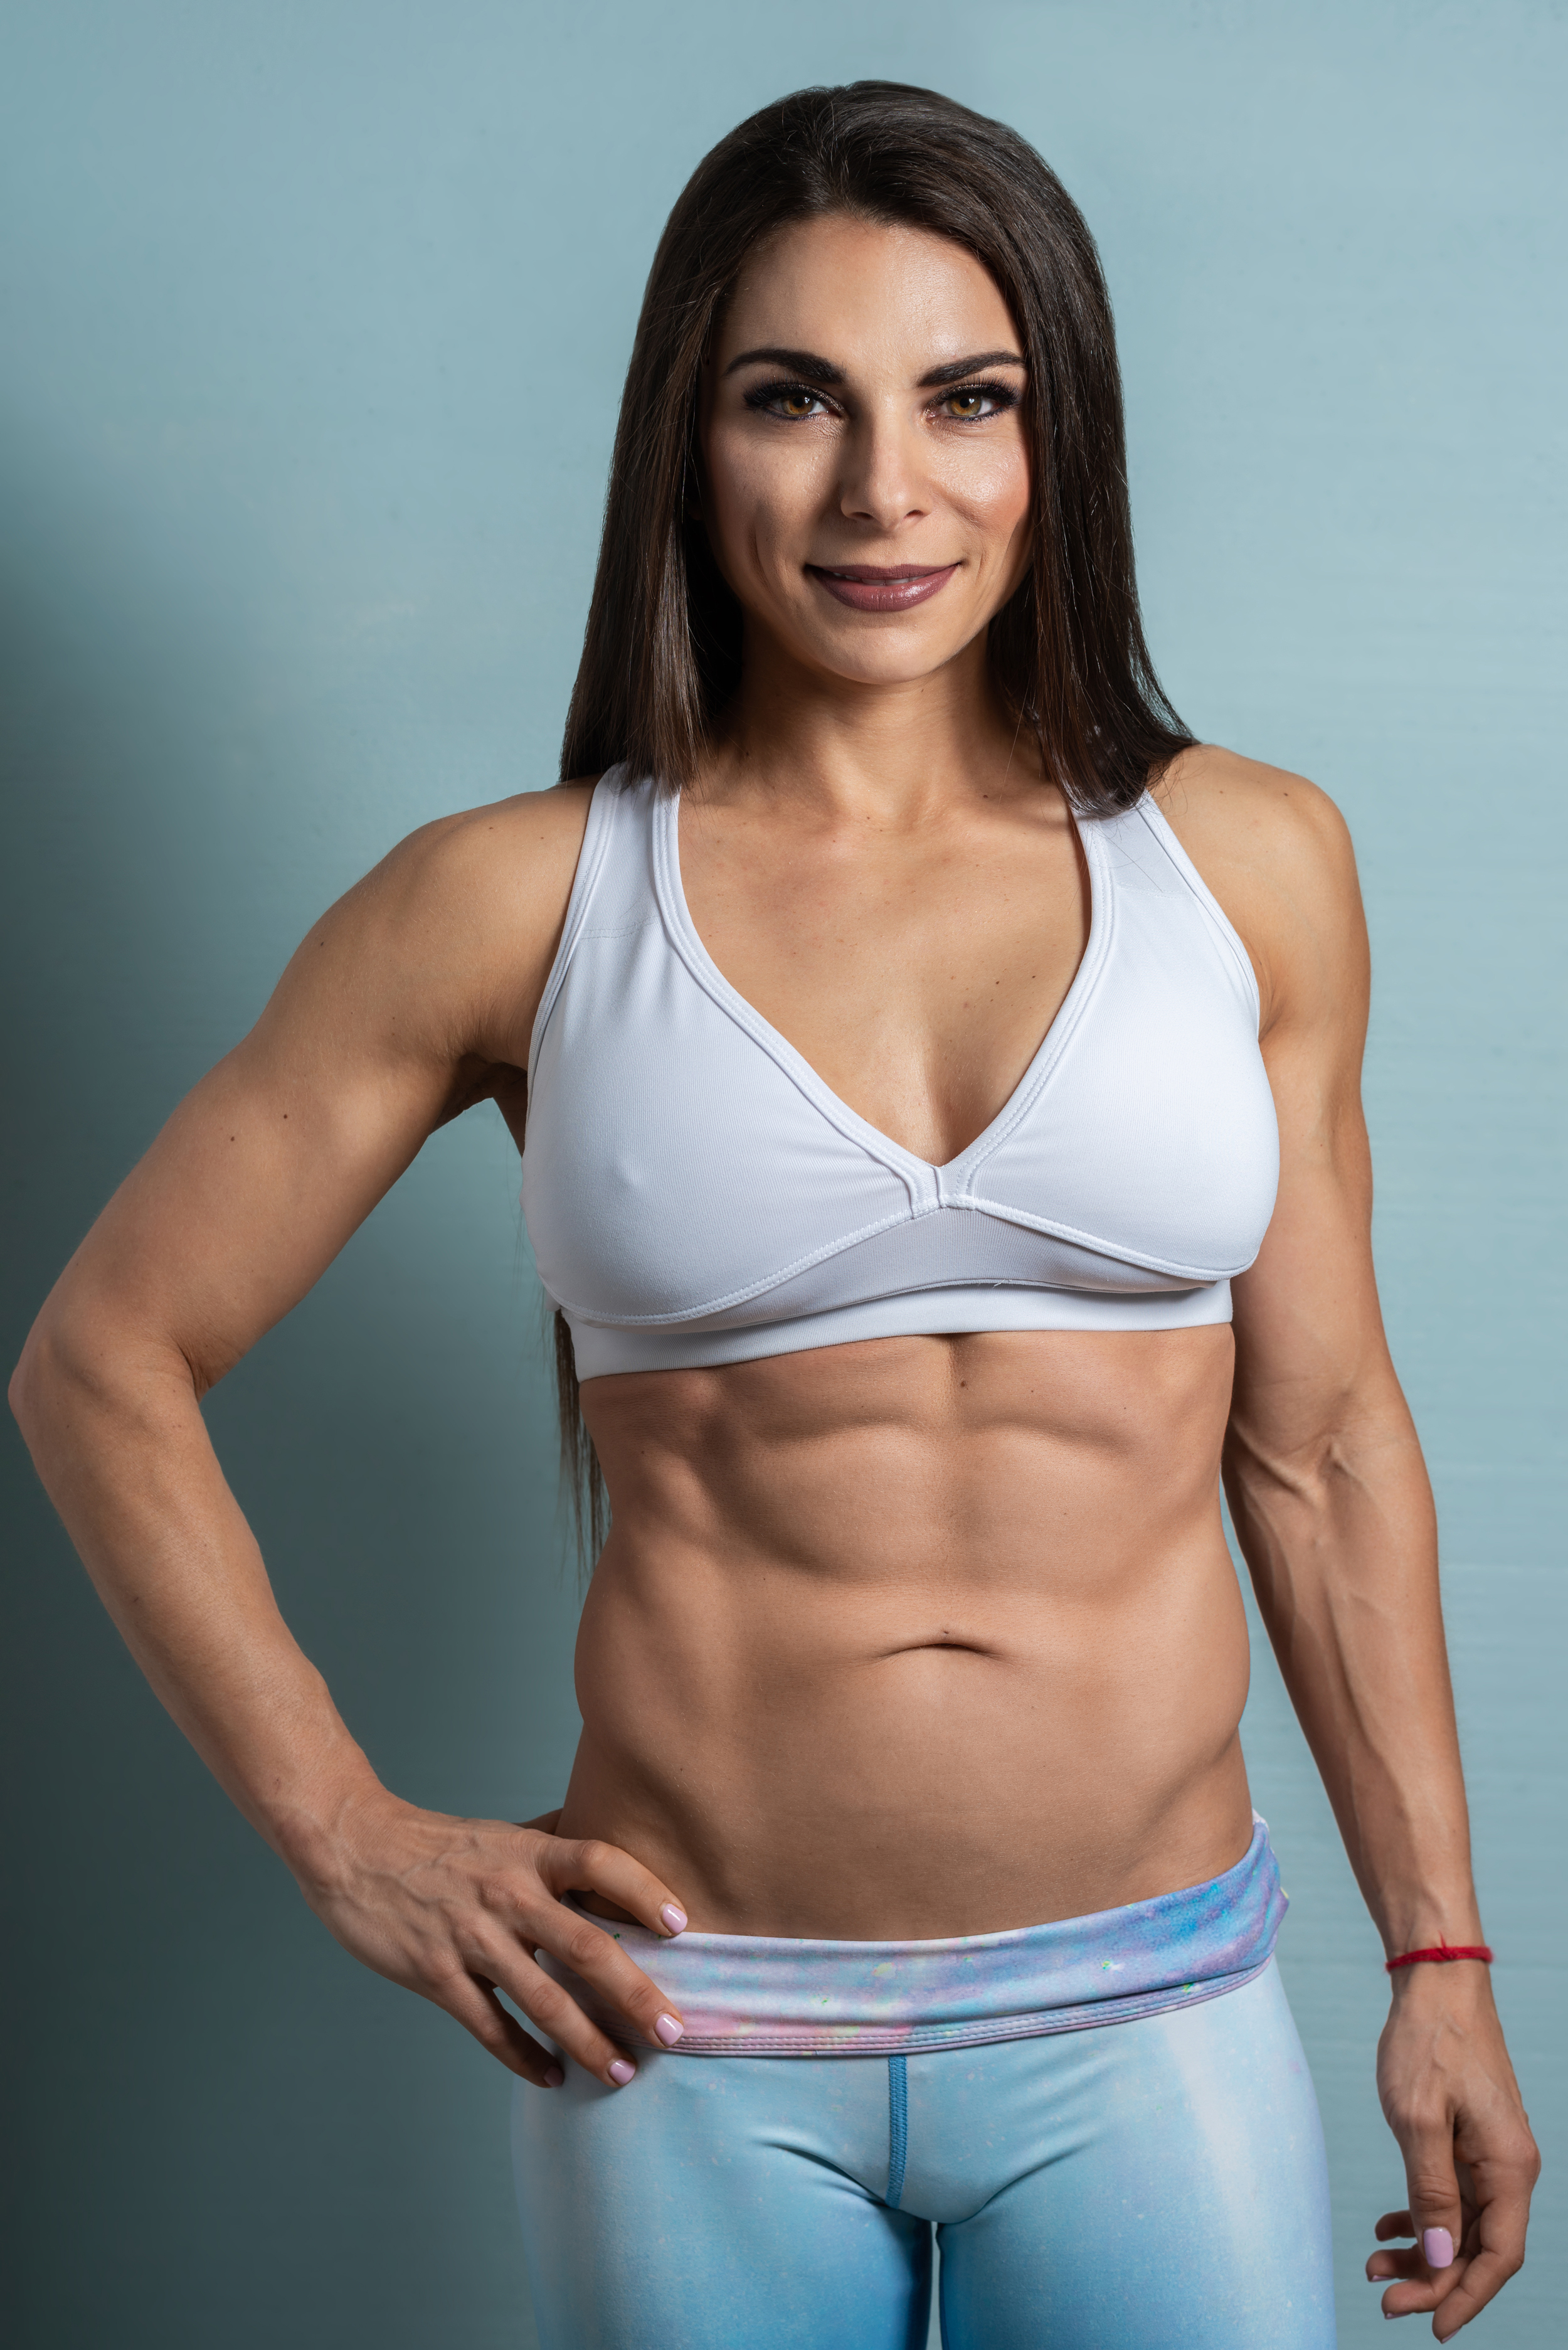 fitness-photography-south-florida-palm-beach-broward-portrait-headshot-photography-michele-anne-photography-07.jpg